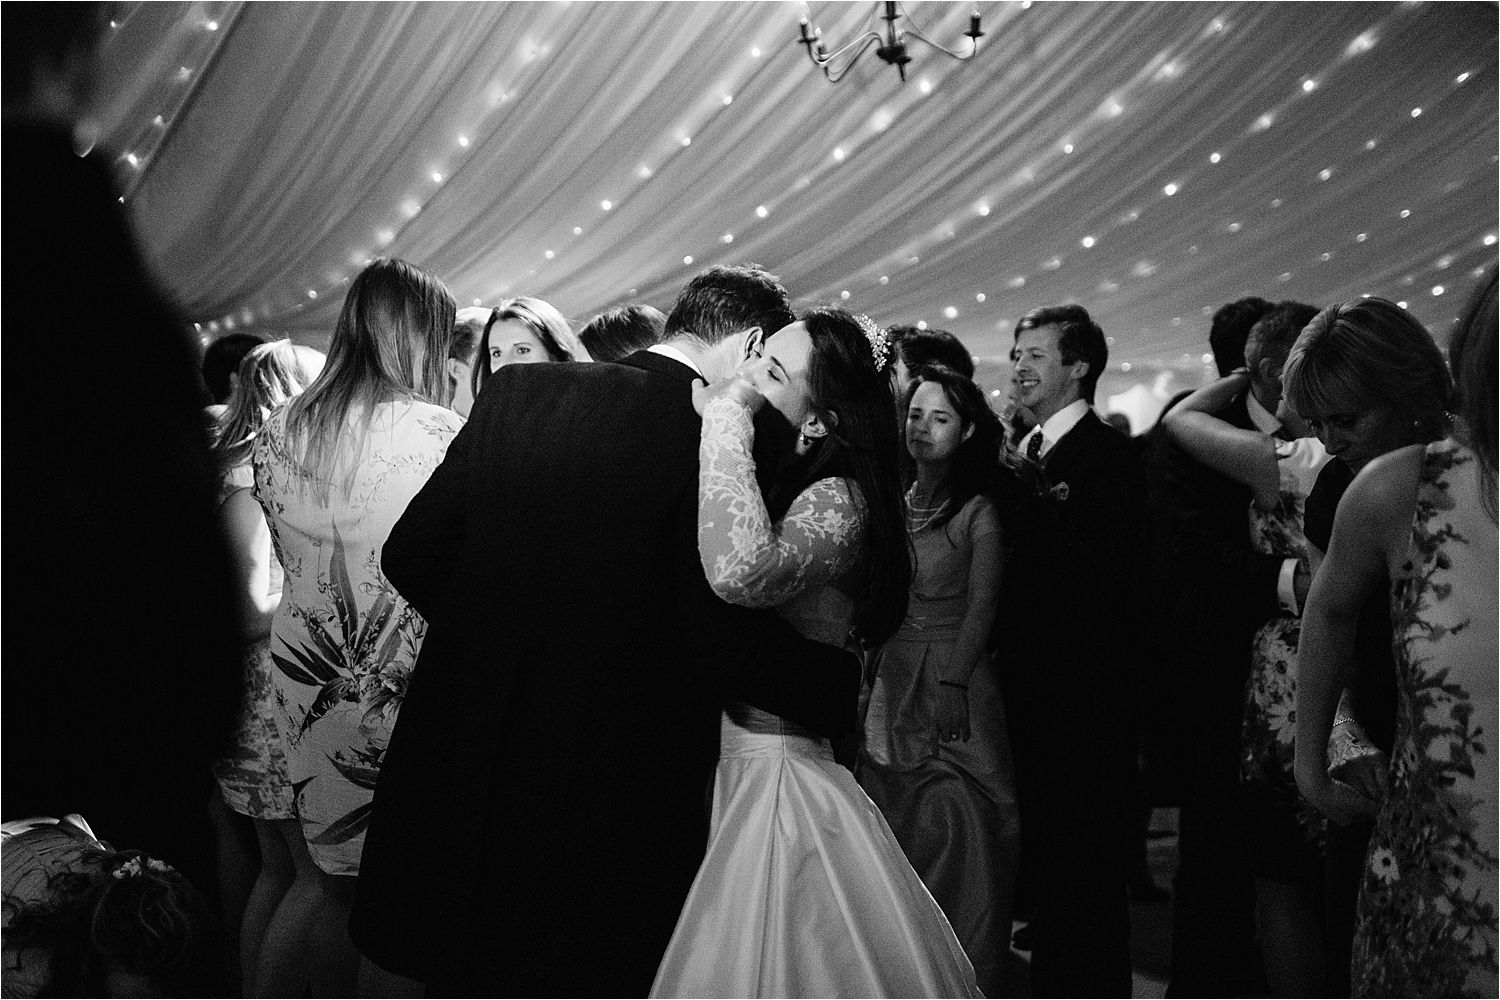 Wedding guests join the dancing at the evening reception at Hilltop Country House